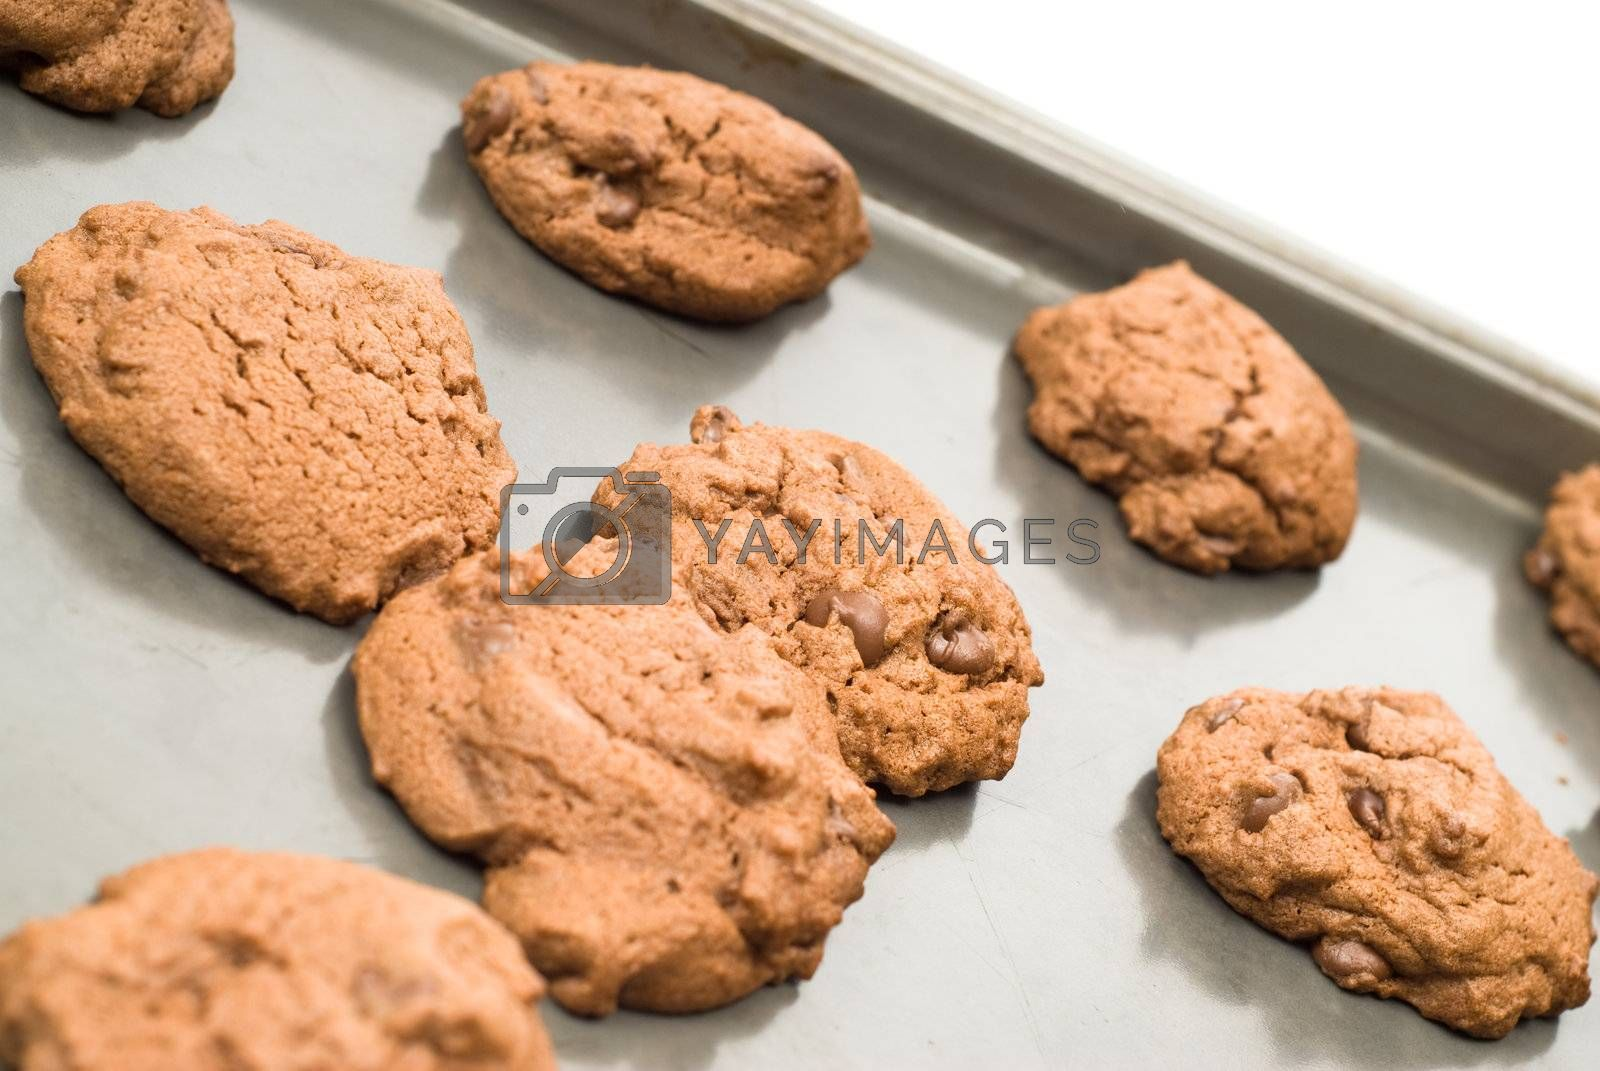 Royalty free image of Homemade Chocolate Chip Cookies by dragon_fang